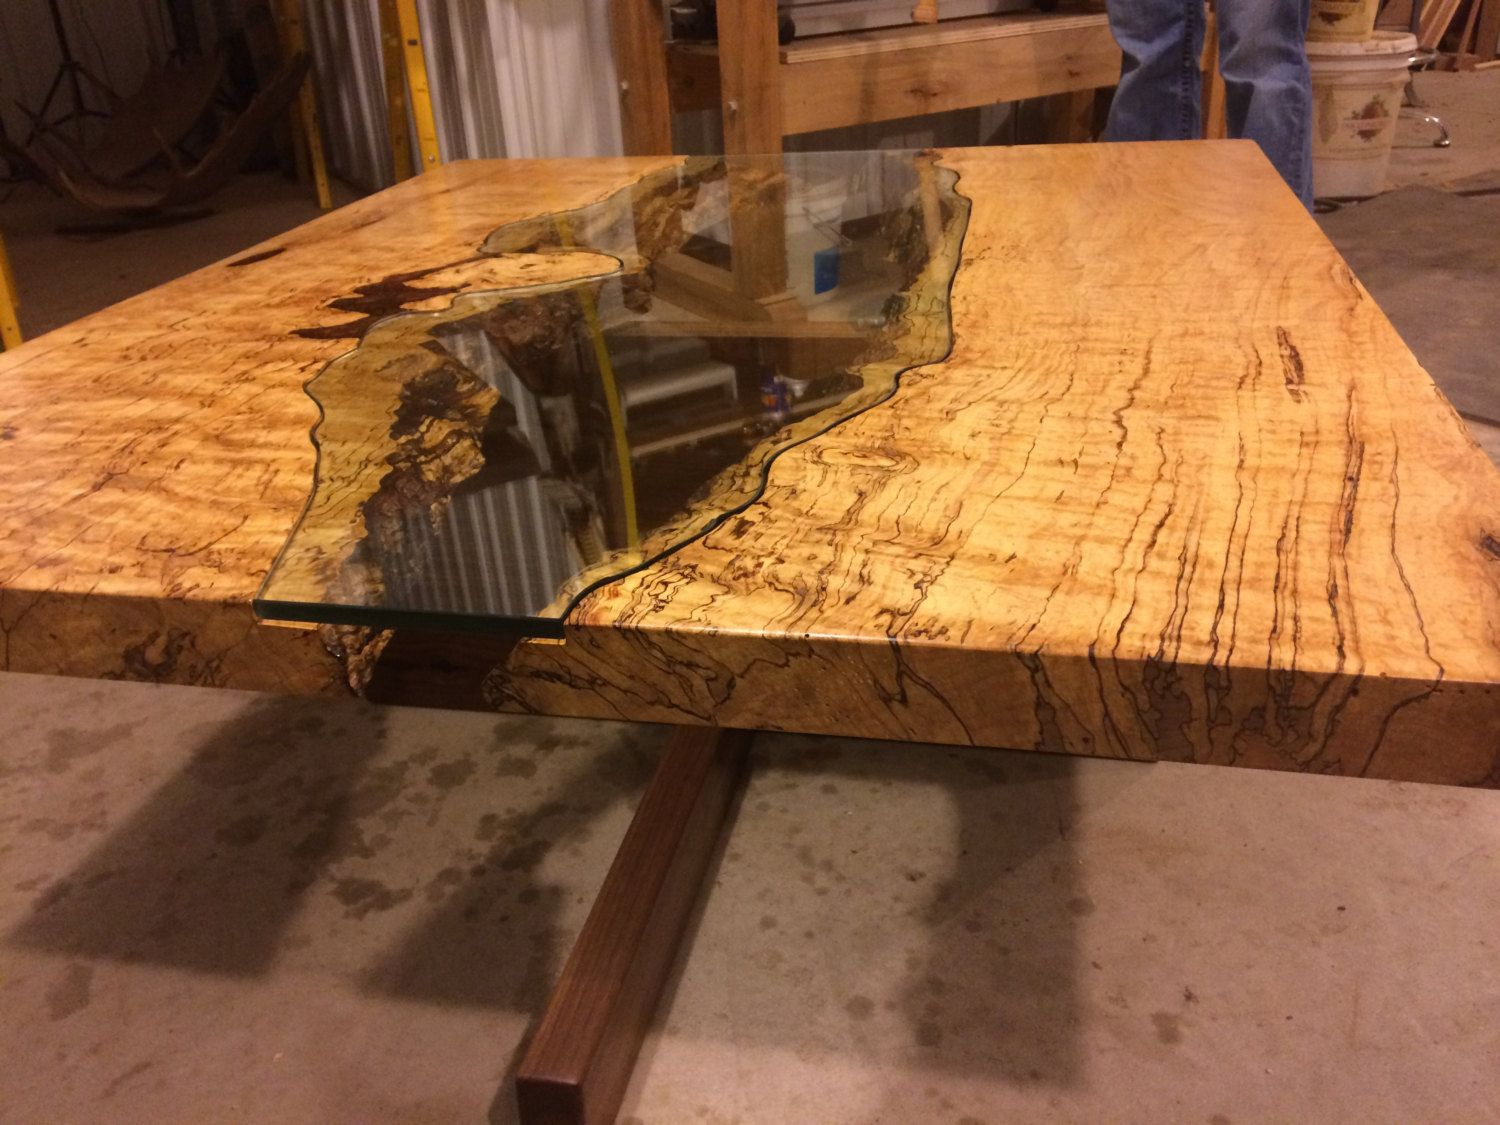 Live Edge Wood And Pebble Table, Topped With Glass | Furniture | Pinterest  | Live Edge Wood, Woods And Glass